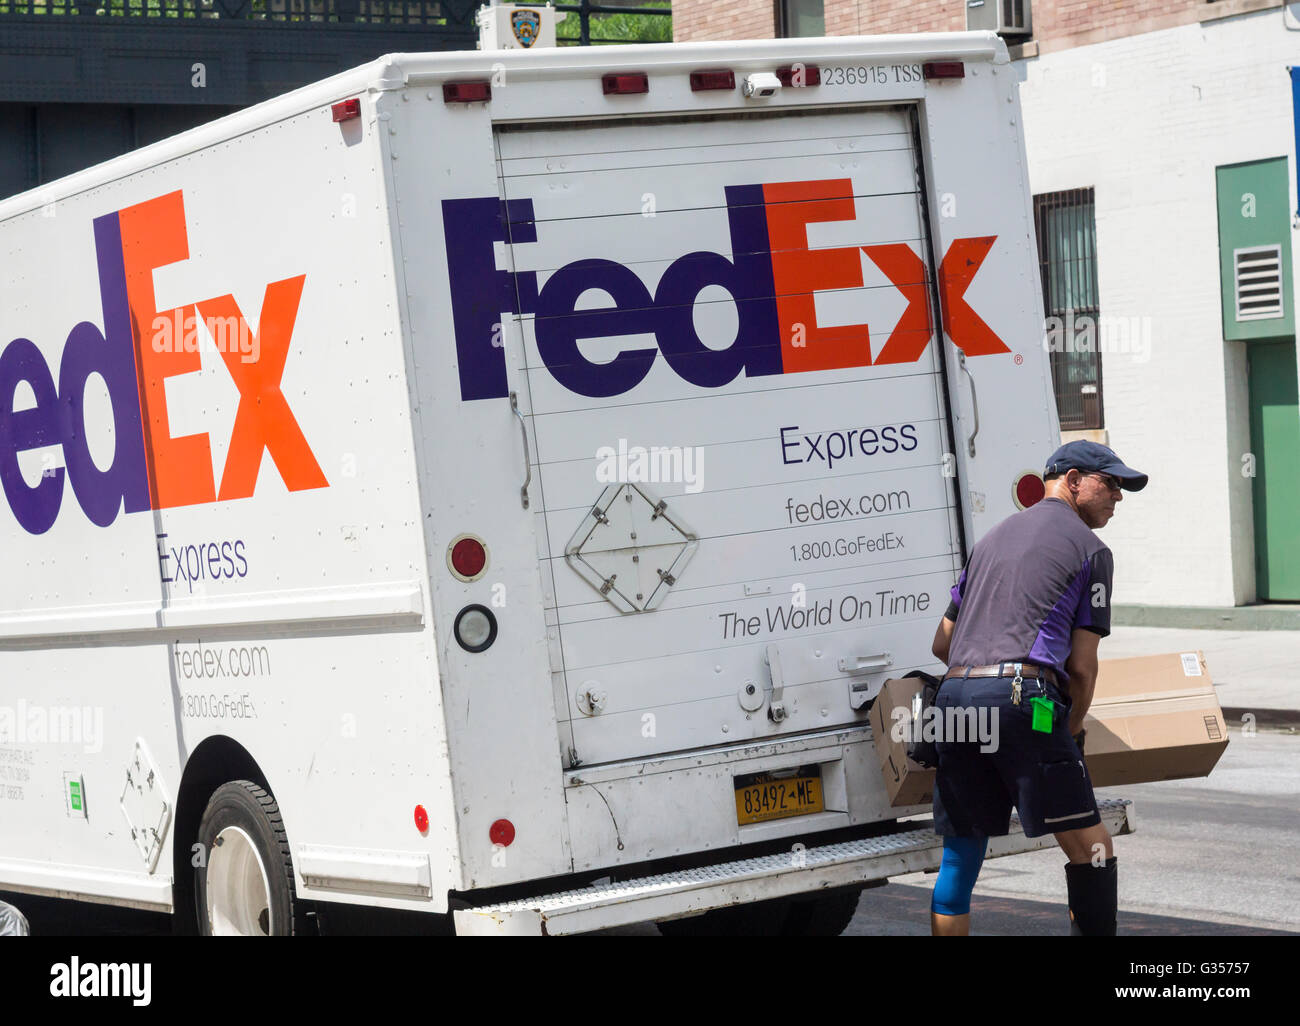 community work and fedex It's part of our culture at fedex for team members to support our charitable investments and local community needs by dedicating their time where they live and work around the world.